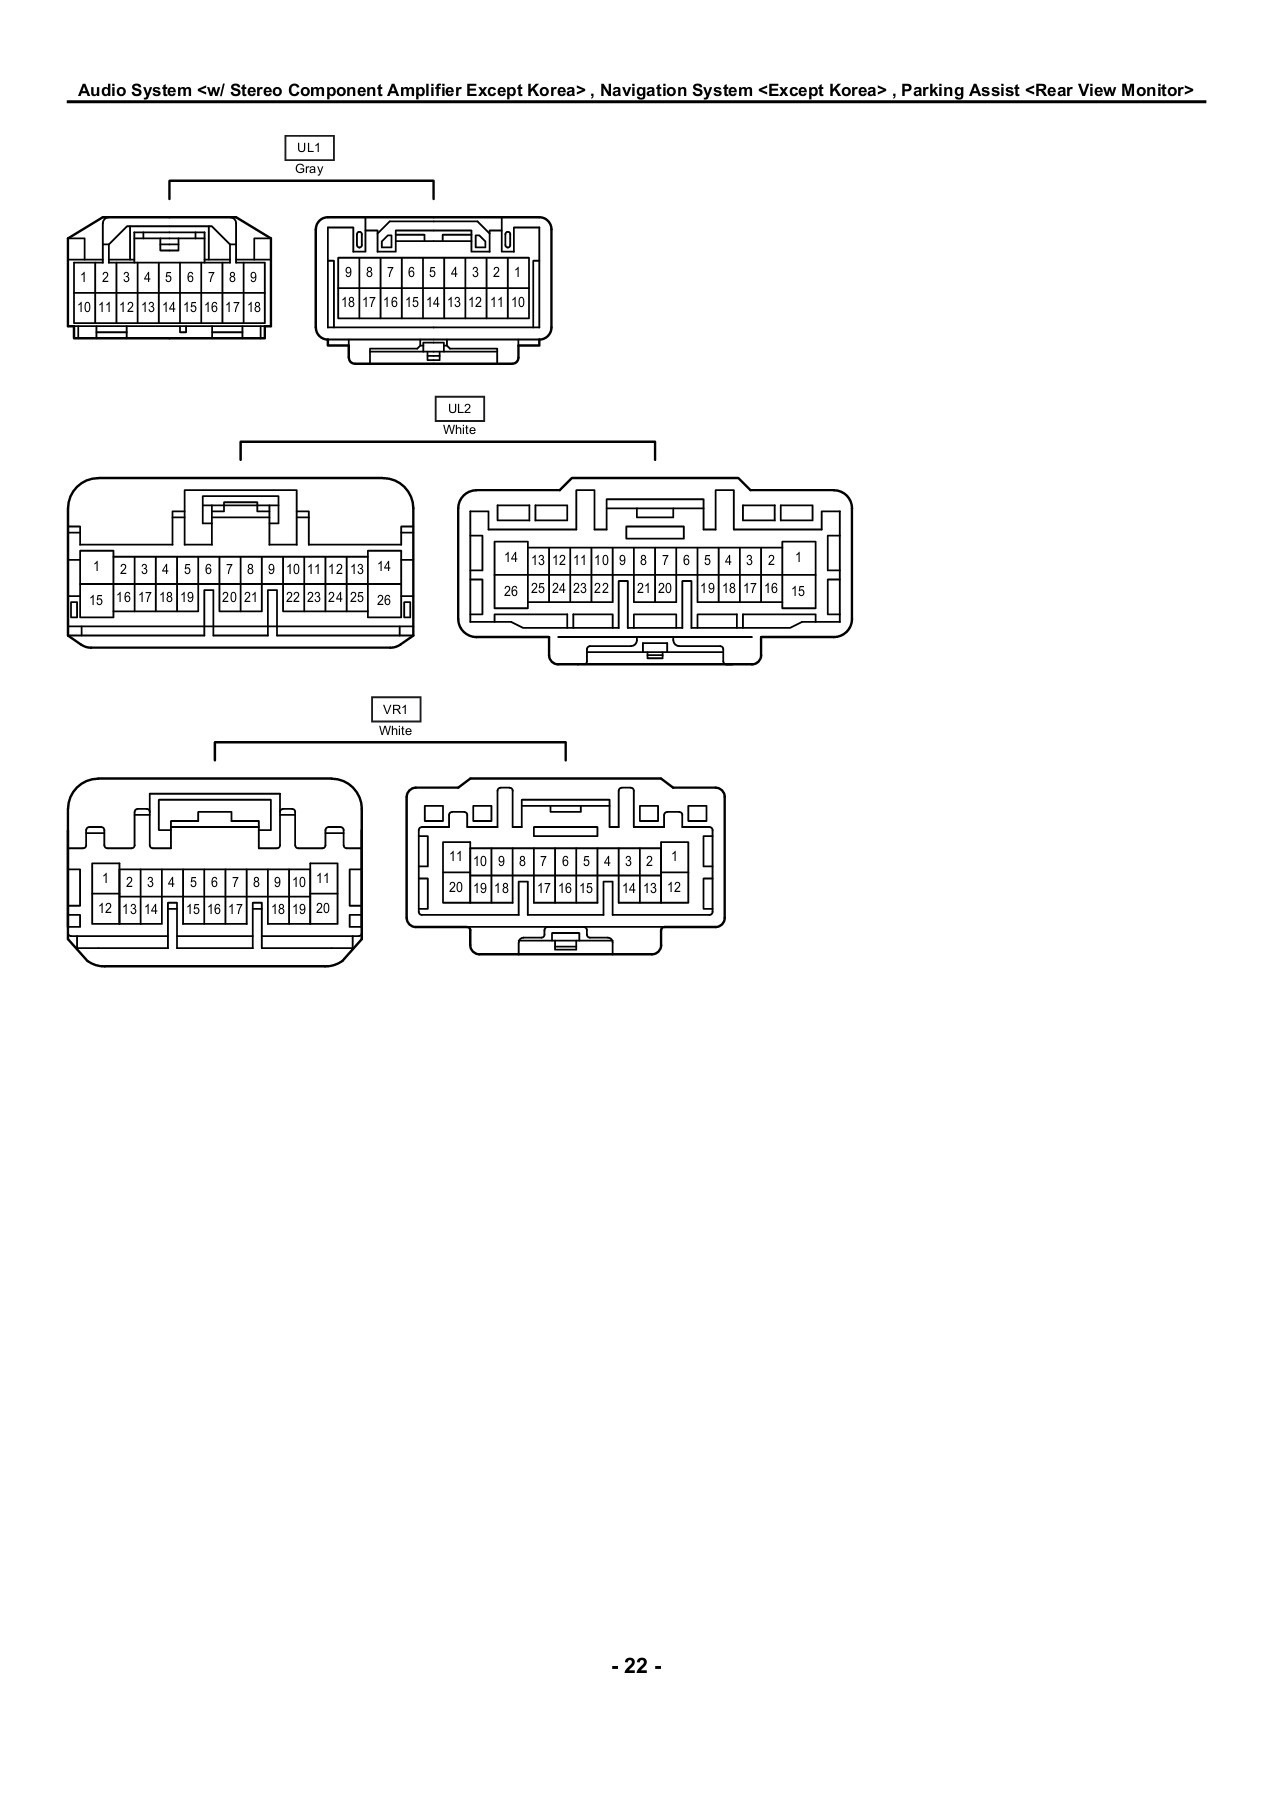 hight resolution of toyota prius 2010 electrical wiring diagrams pages 51 100 text version fliphtml5